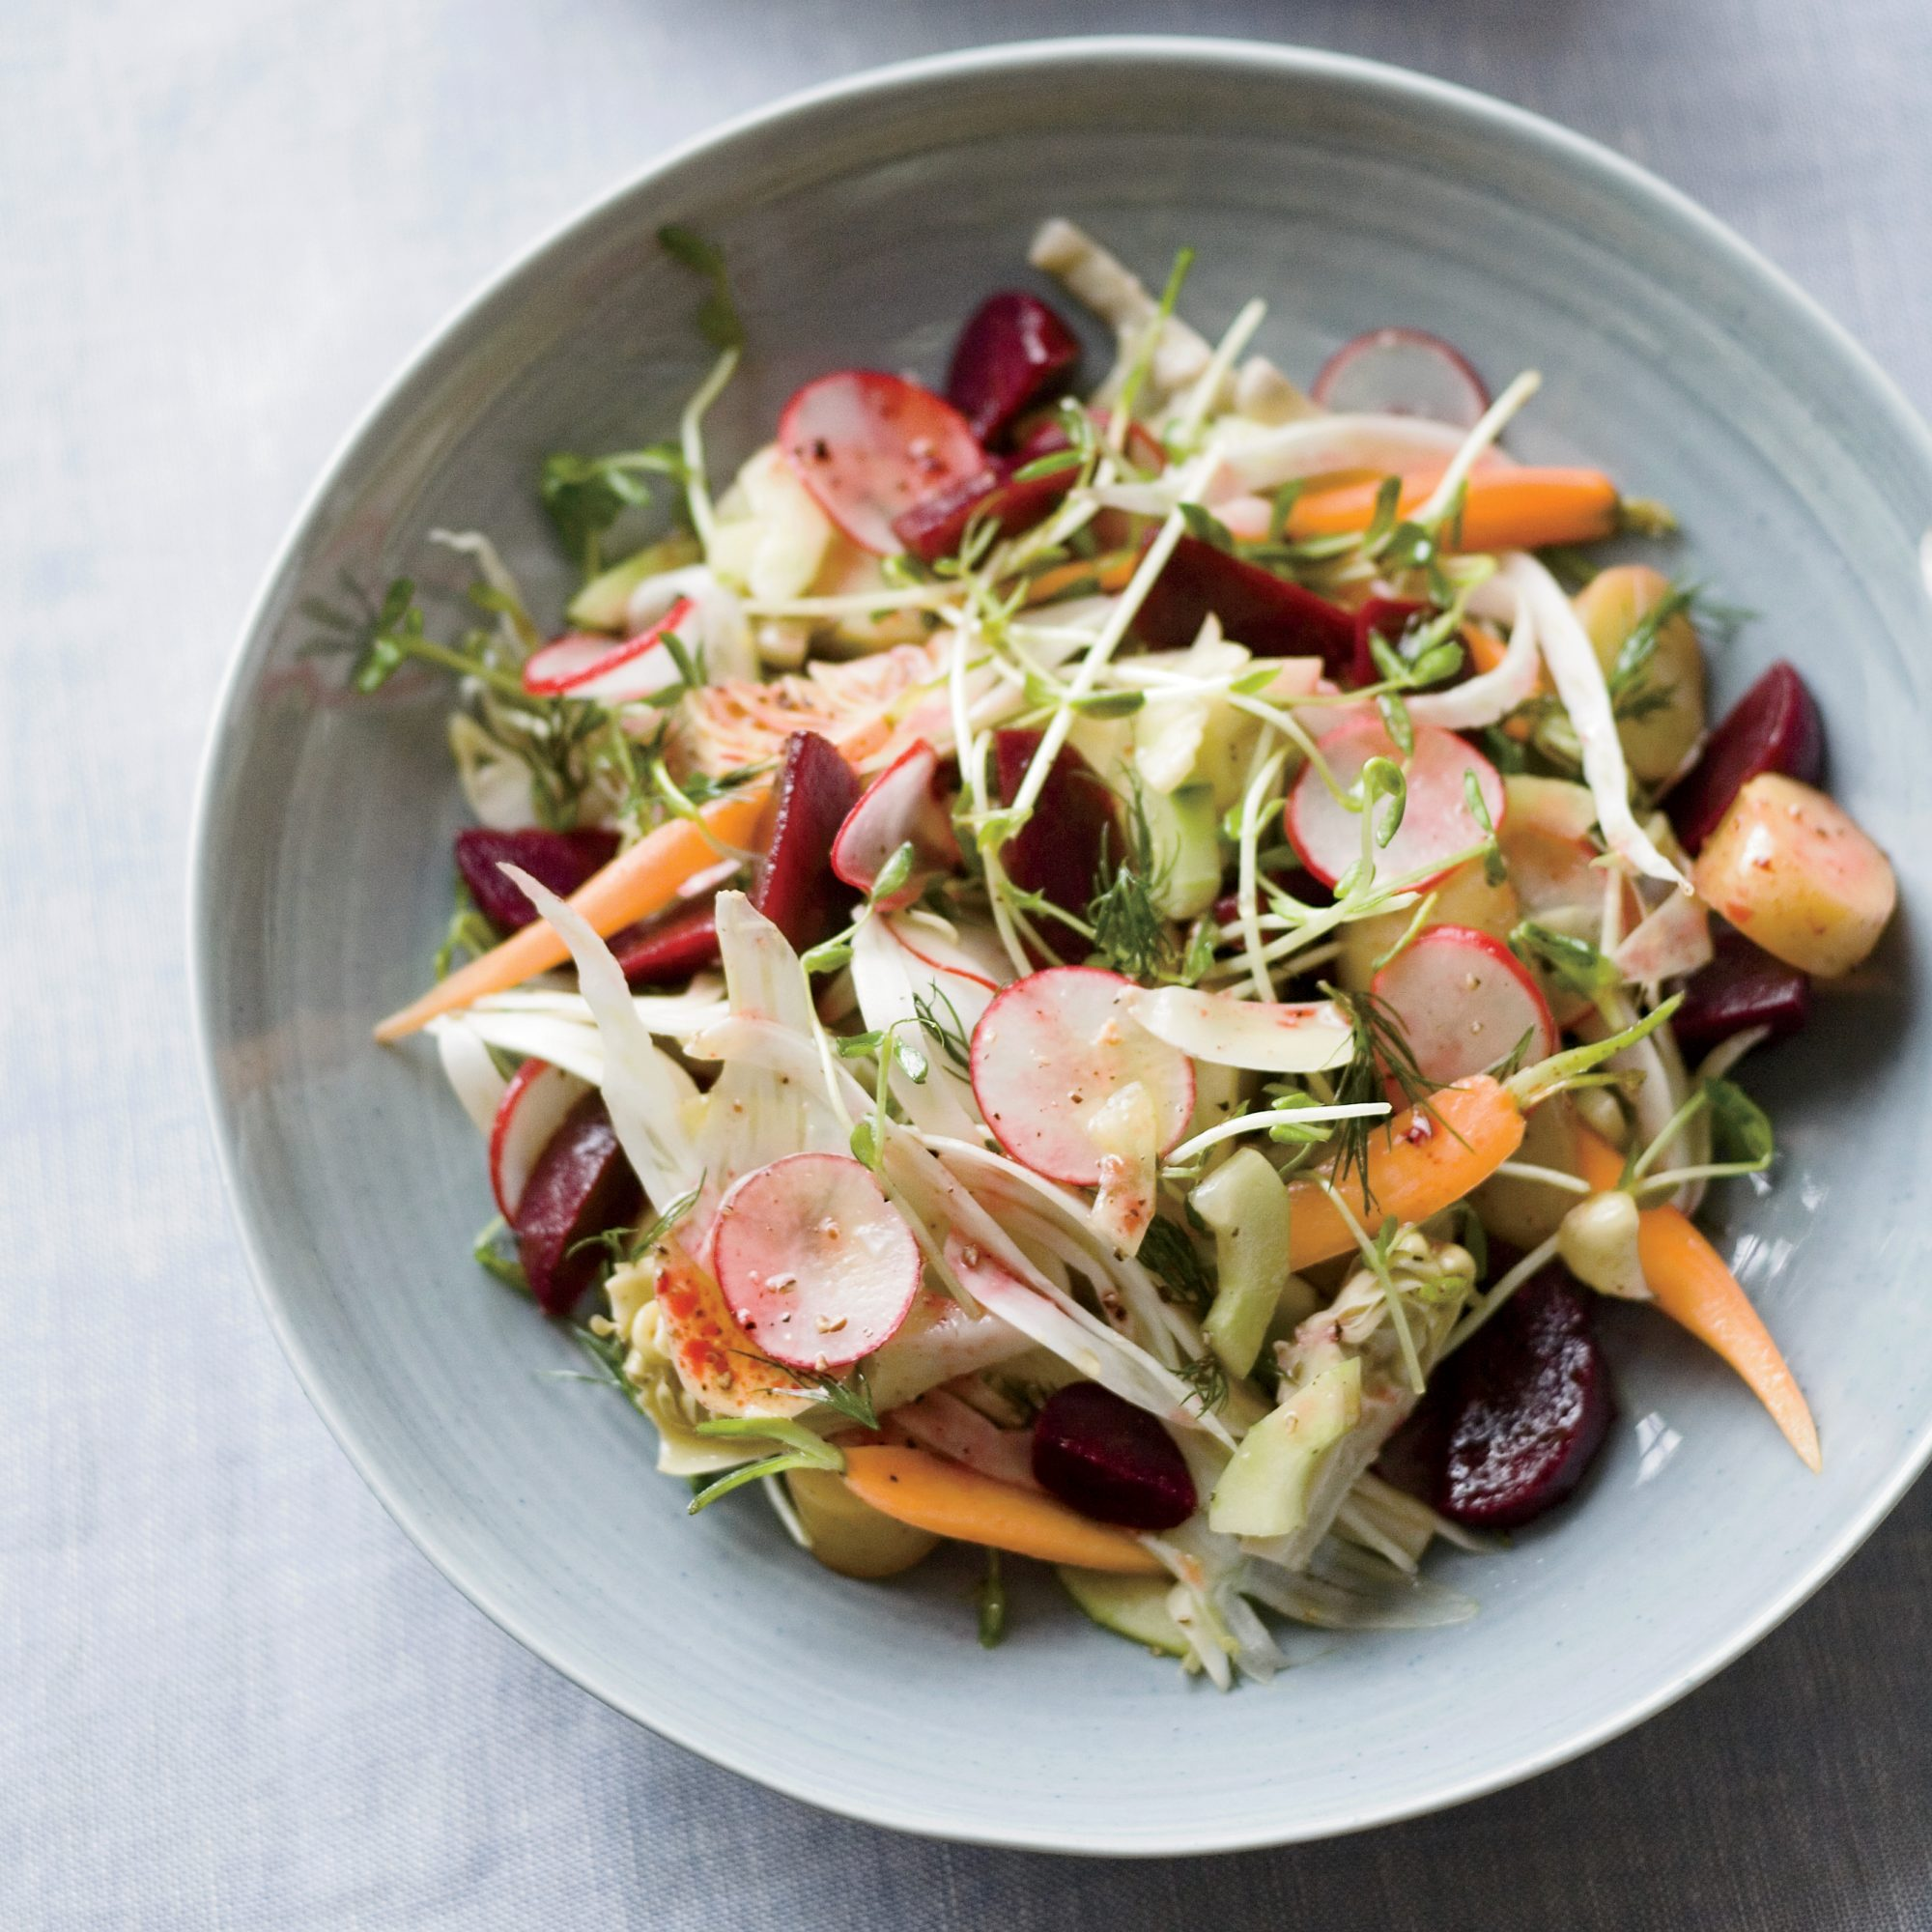 10 famous chef dishes simplified food wine august chopped salad forumfinder Choice Image